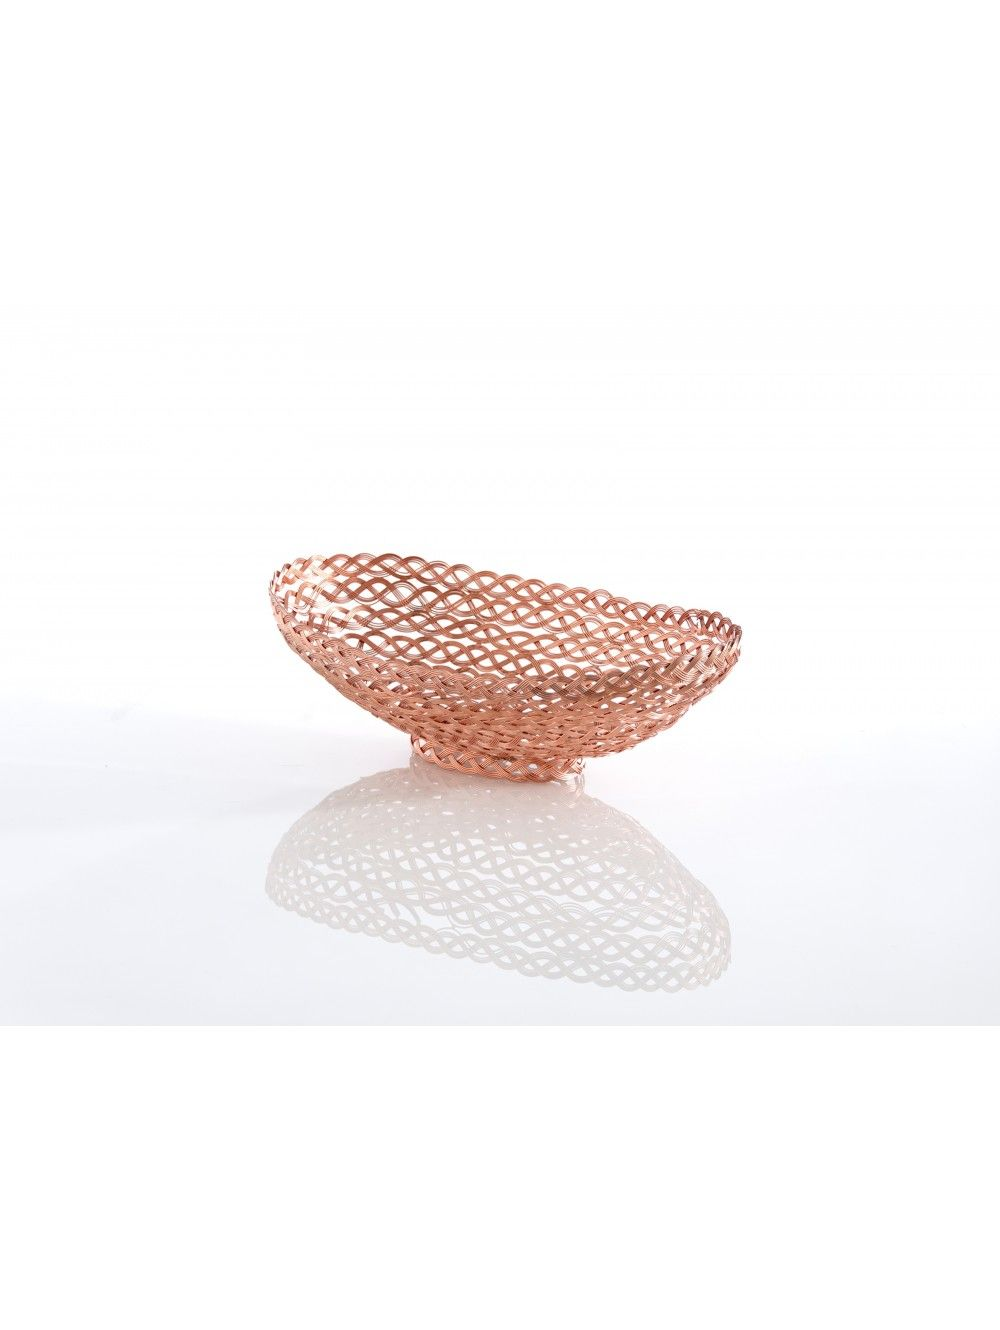 Braided Rose Gold Oval Platter - $44.00